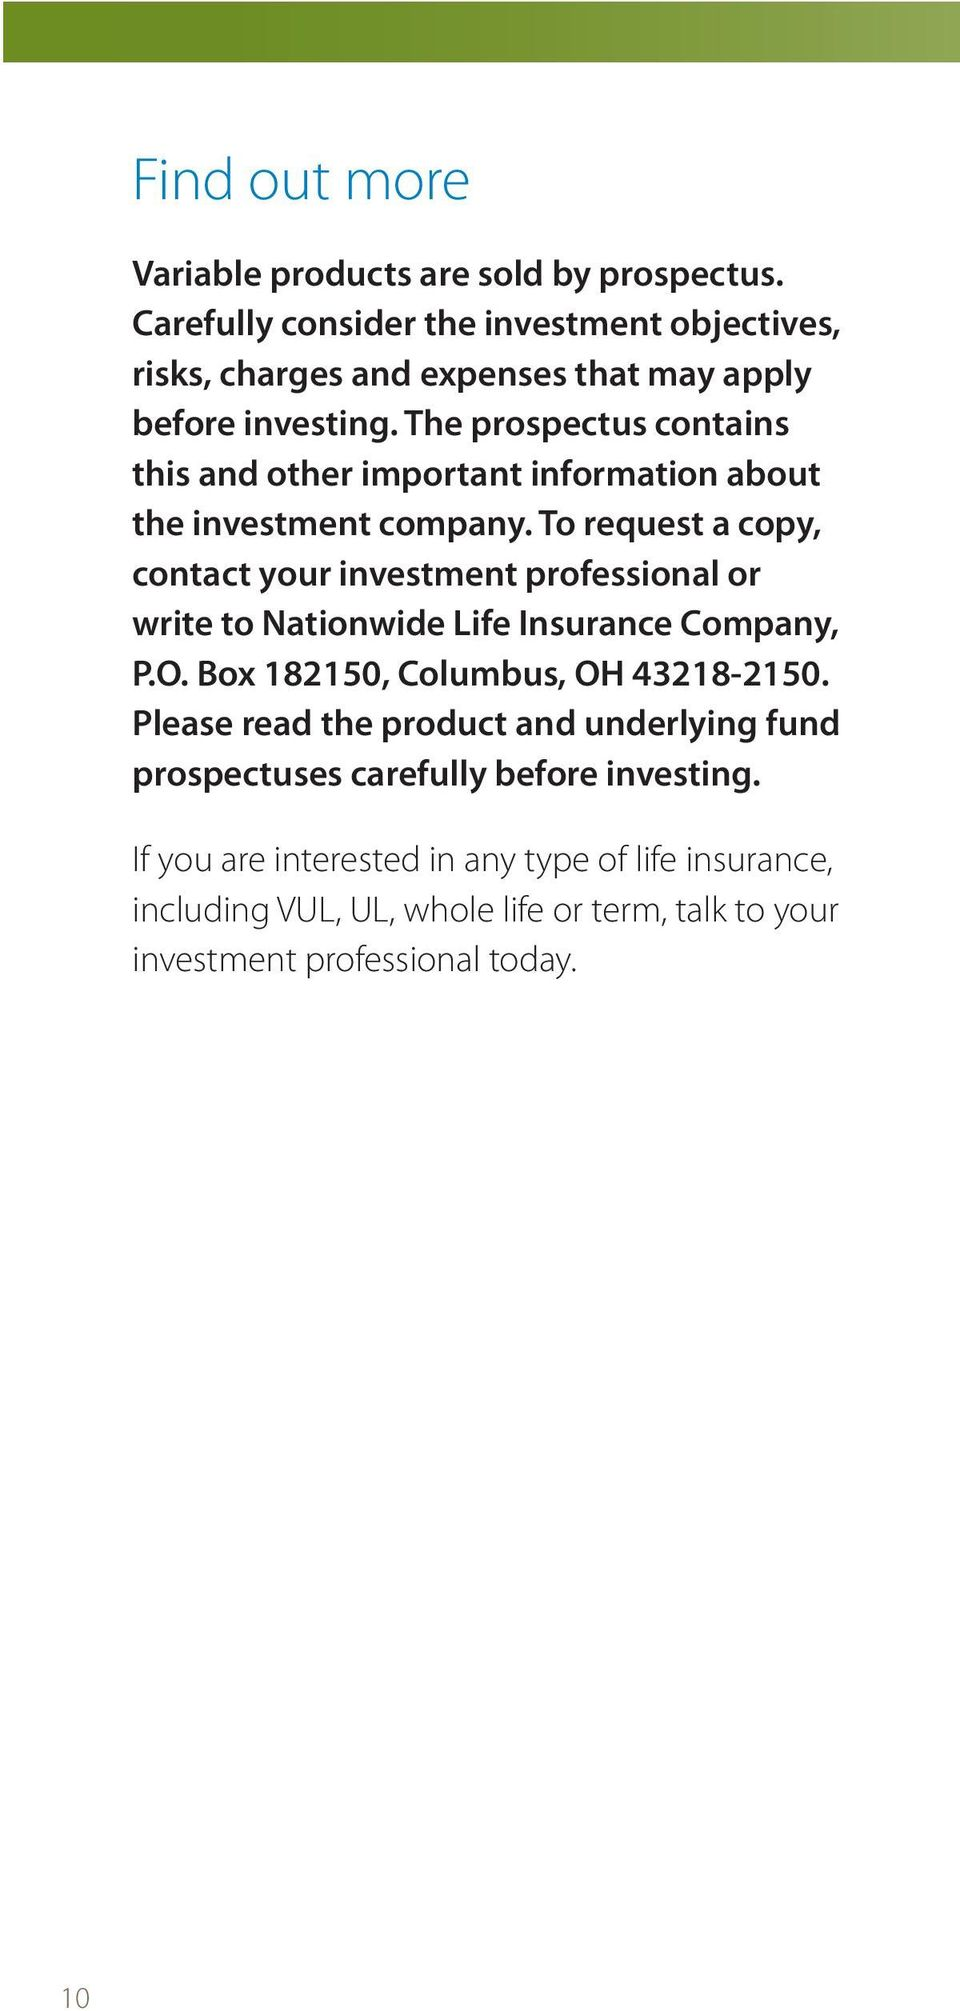 The prospectus contains this and other important information about the investment company.